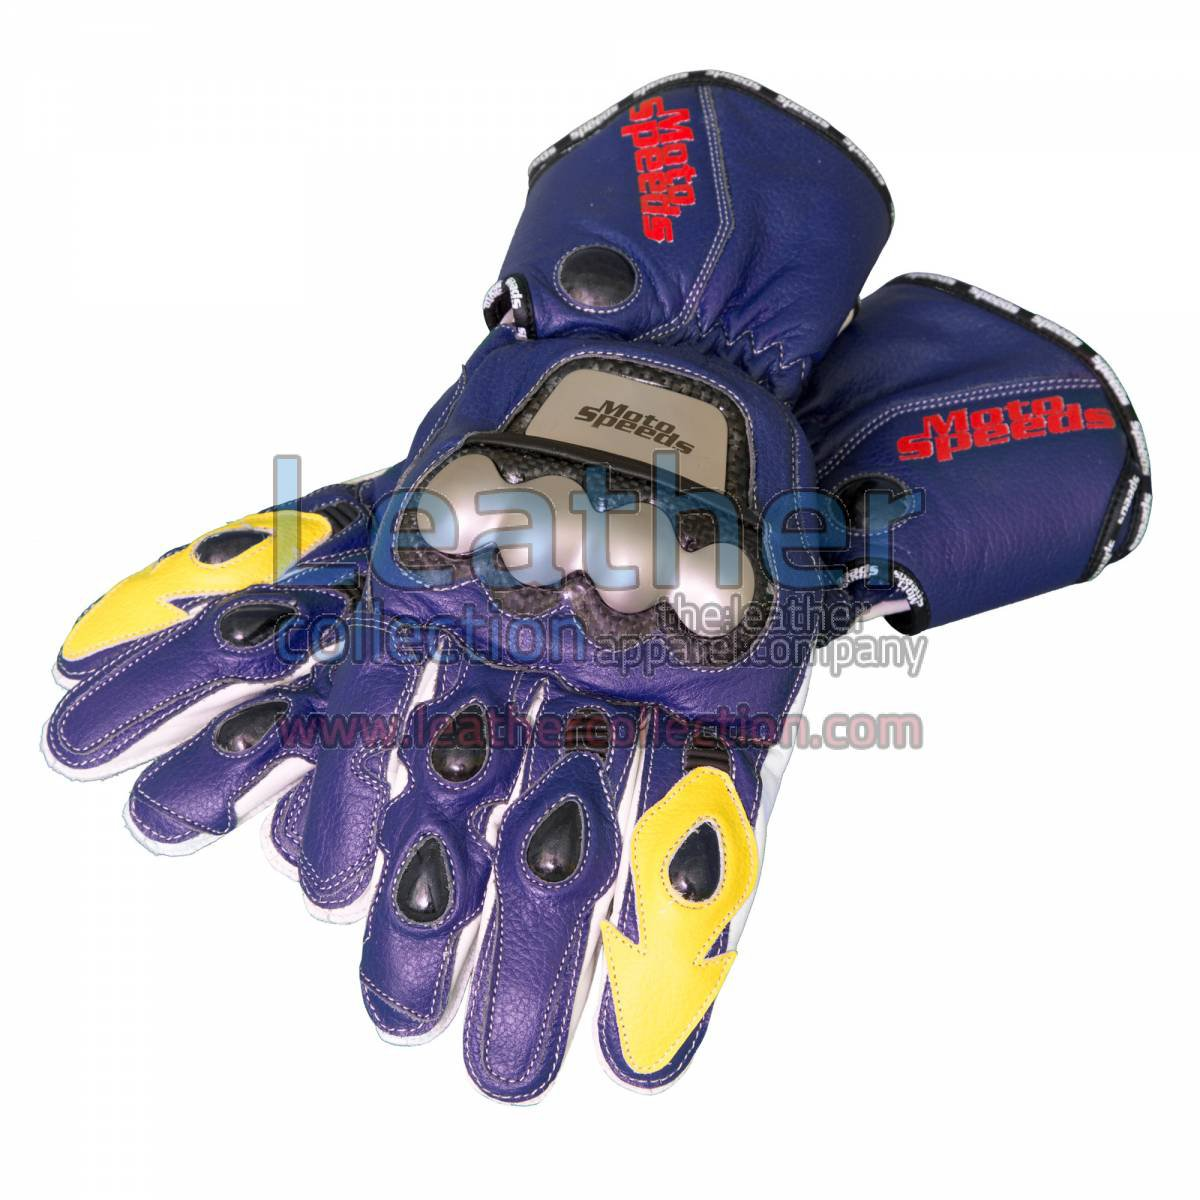 Chris Vermeulen Rizla Suzuki Race Gloves